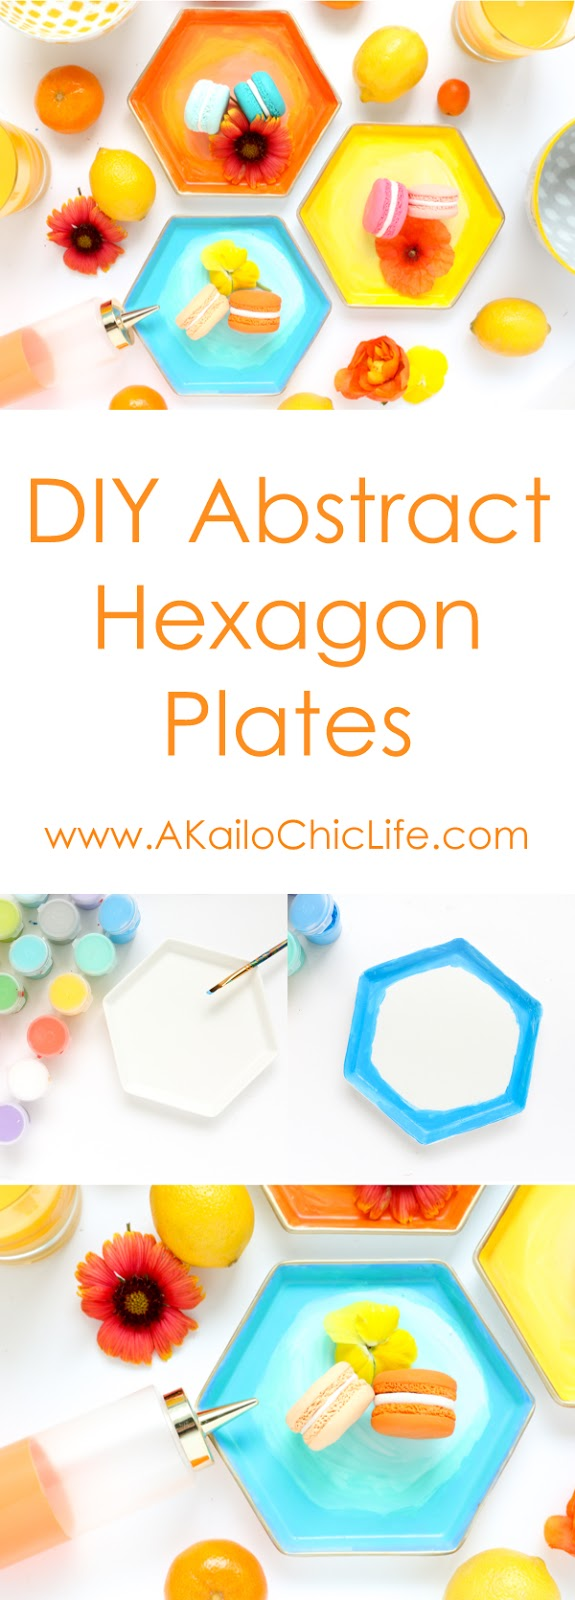 Learn how to paint your own DIY Abstract Art Plates - Hexagon Plates - Breakfast plates - DIY - Craft - DIY hexagon plates